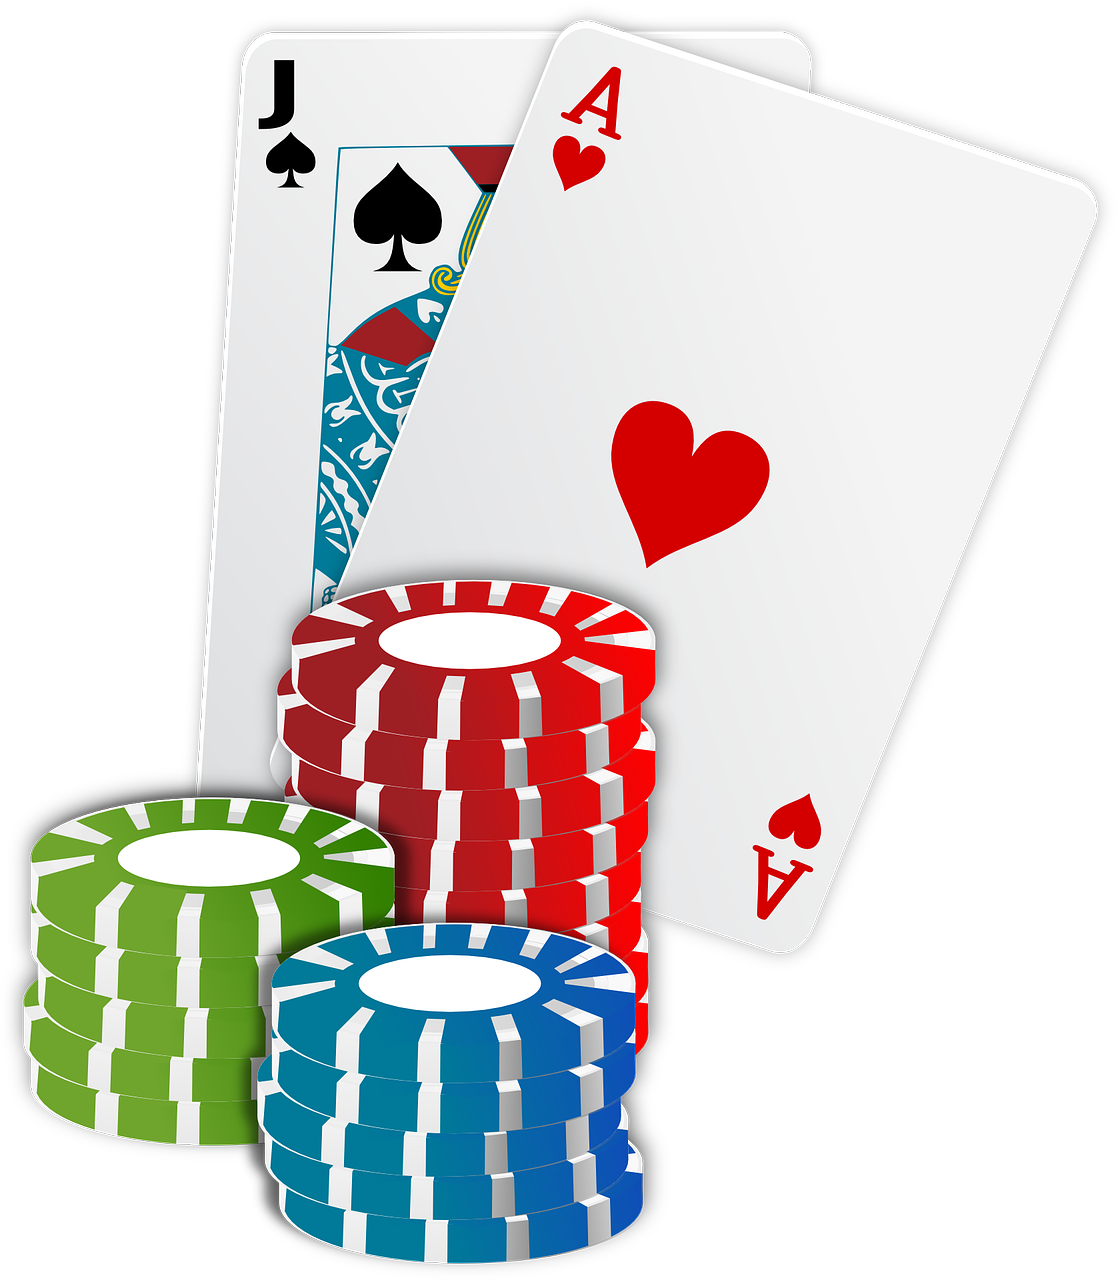 The Best Casino Games For You Based on Your Personality Type -